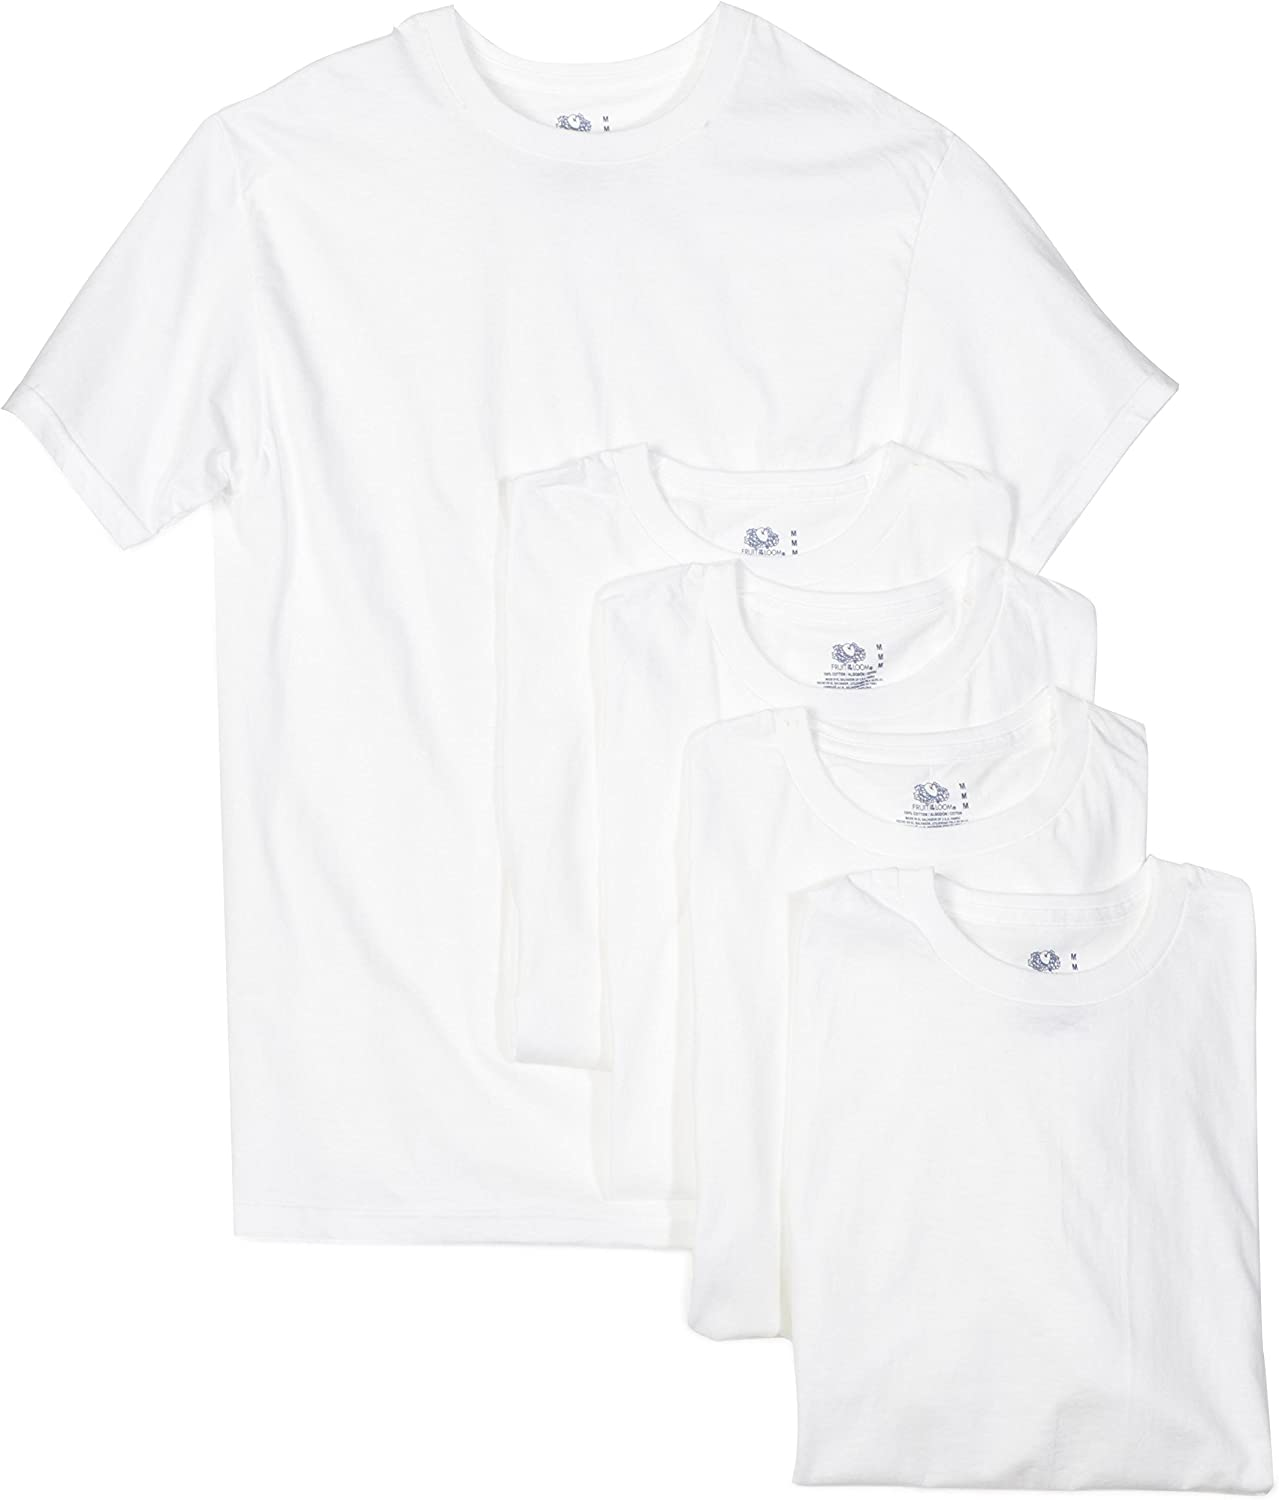 Fruit of The Loom Mens 6-Pack Stay Tucked Crew T-Shirt White, XXXX-Large // 58-60 Chest